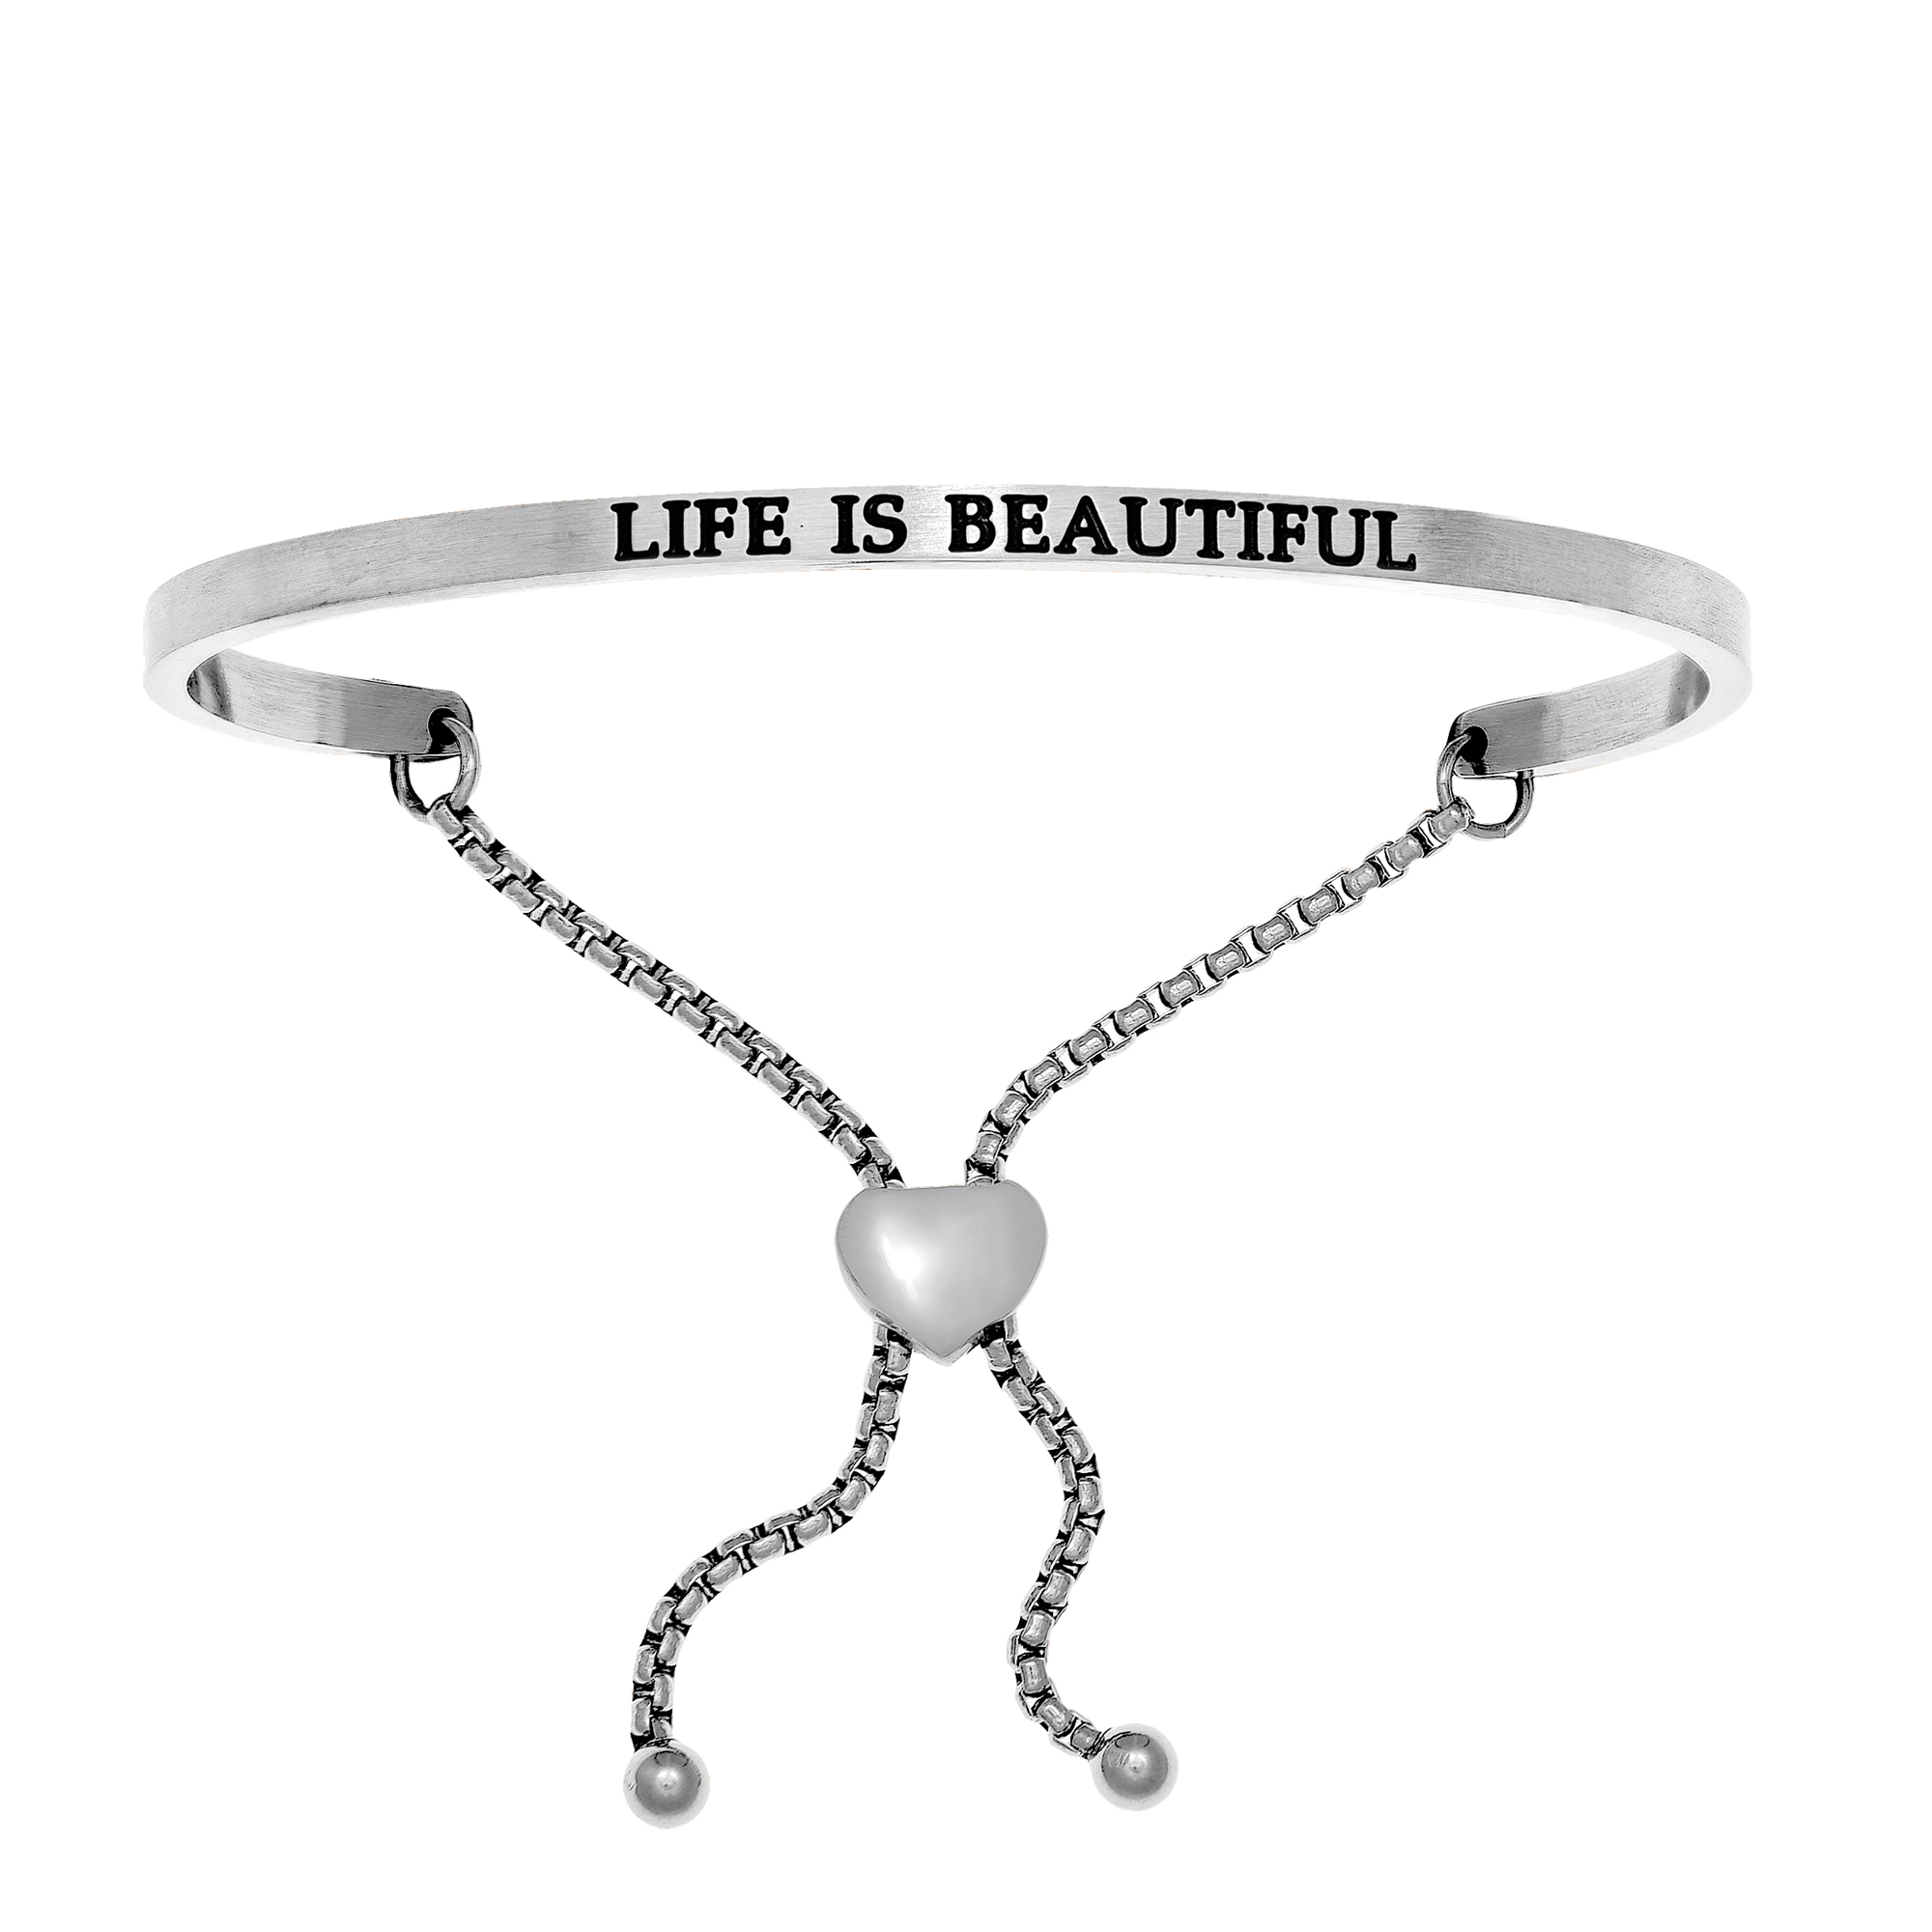 Intuitions Stainless Steel LIFE IS BEAUTIFUL Diamond Accent Adjustable Bracelet Each of these bracelets carries a personal message of inspiration, spirituality or just plain fun. Meant to be worn alone or stacked together for a smart, contemporary look, they're a great self-purchase or as a gift for family or friends. Intuitions are made of stainless steel and come in two styles standard cuff or friendship and fit practically any wrist. Intuitions Jewelry makes the difference in your daily life by designing and creating bracelets and bangles with motivational quotes to inspire you and your loved ones. Giving back $.25 of each bracelet to BABY2BABY